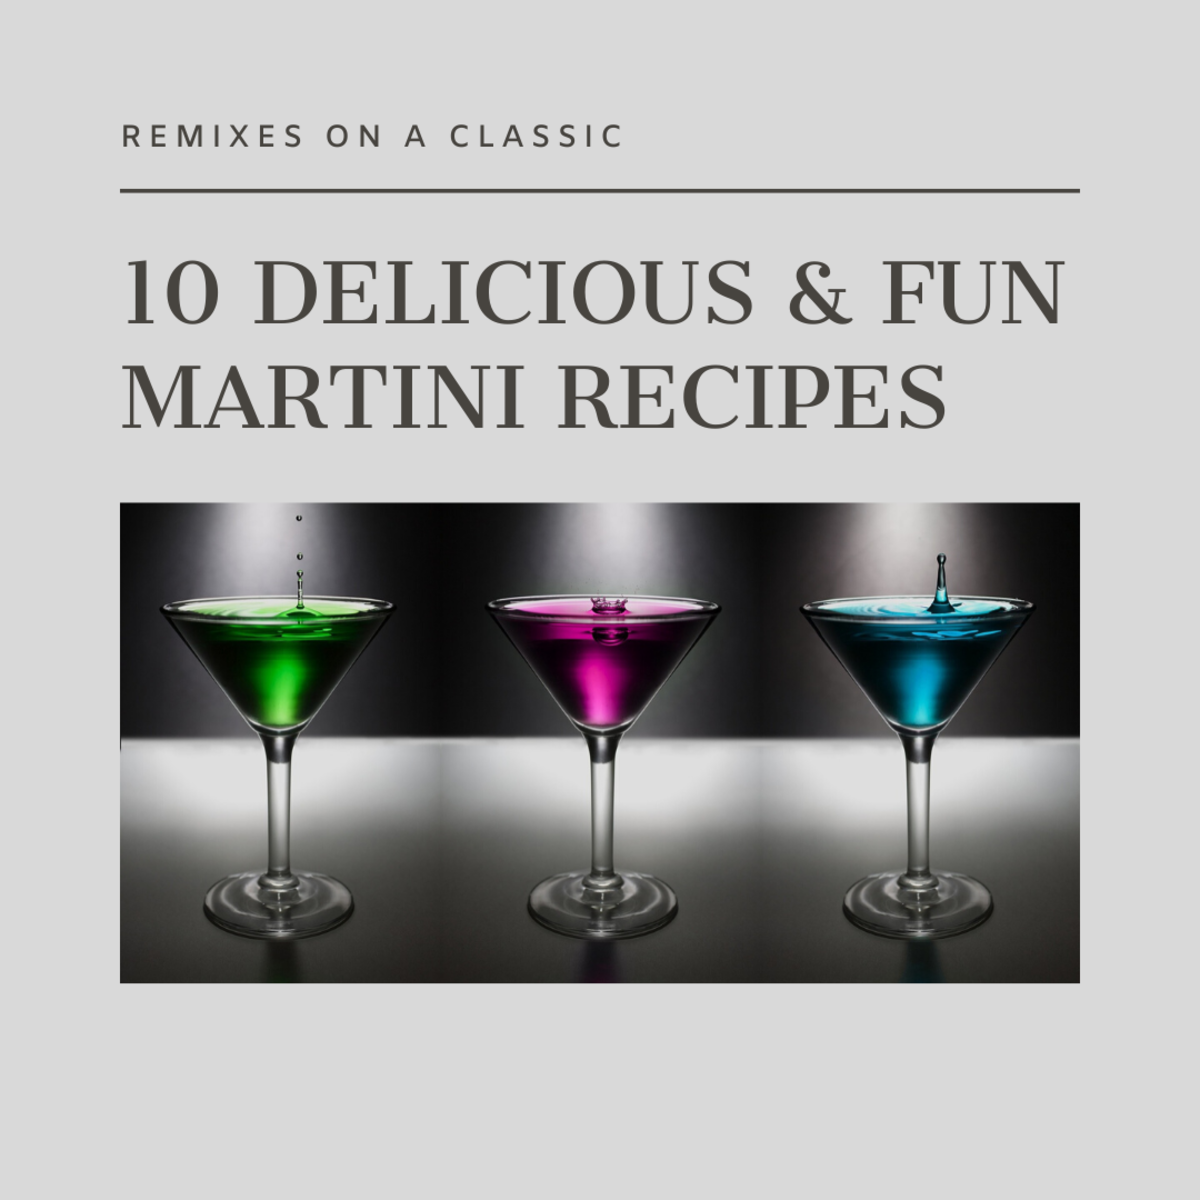 Here is a list of 10 different and delicious martini recipes to try at your next get-together.